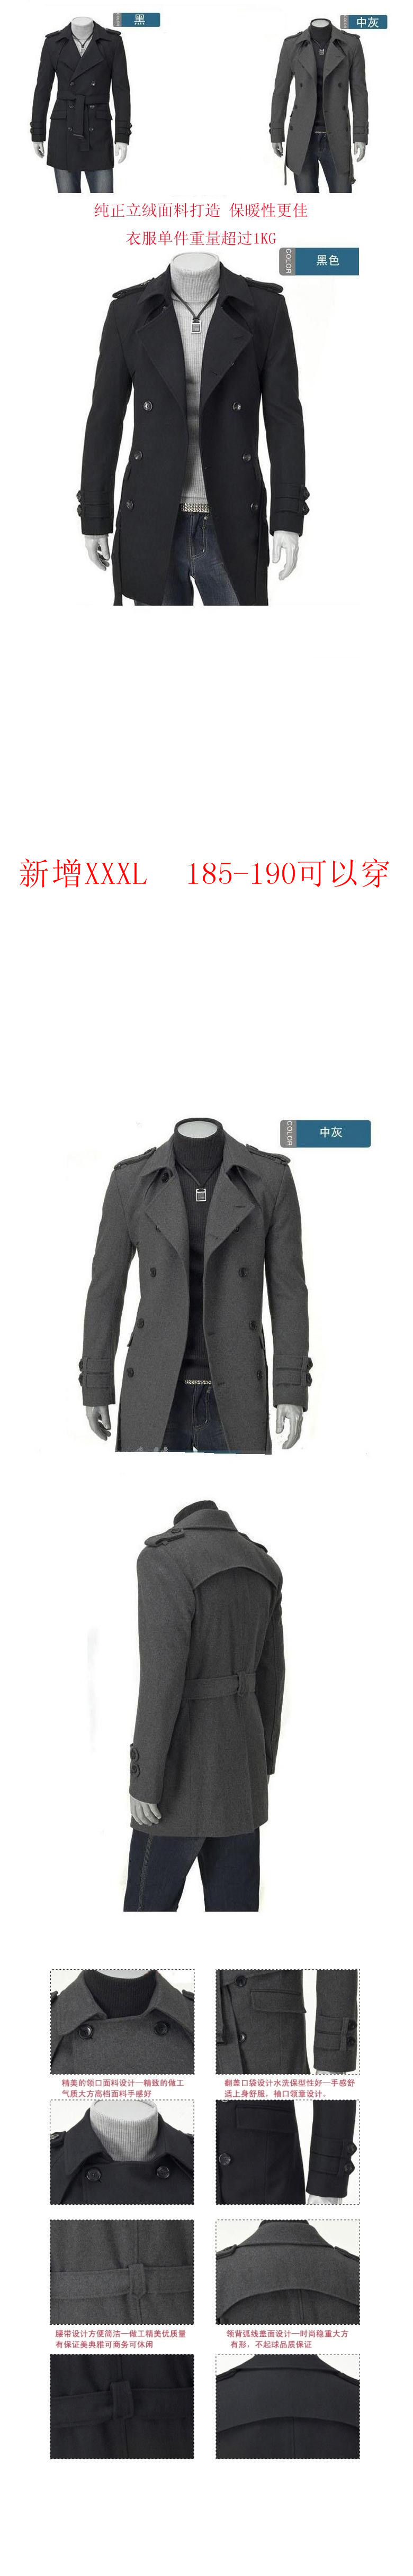 Fast Shipping 2019 New Men 'S Jackets Double Platoon Buckle Men Long Coat With Belt Double Breasted Trench Coat Dropshipping